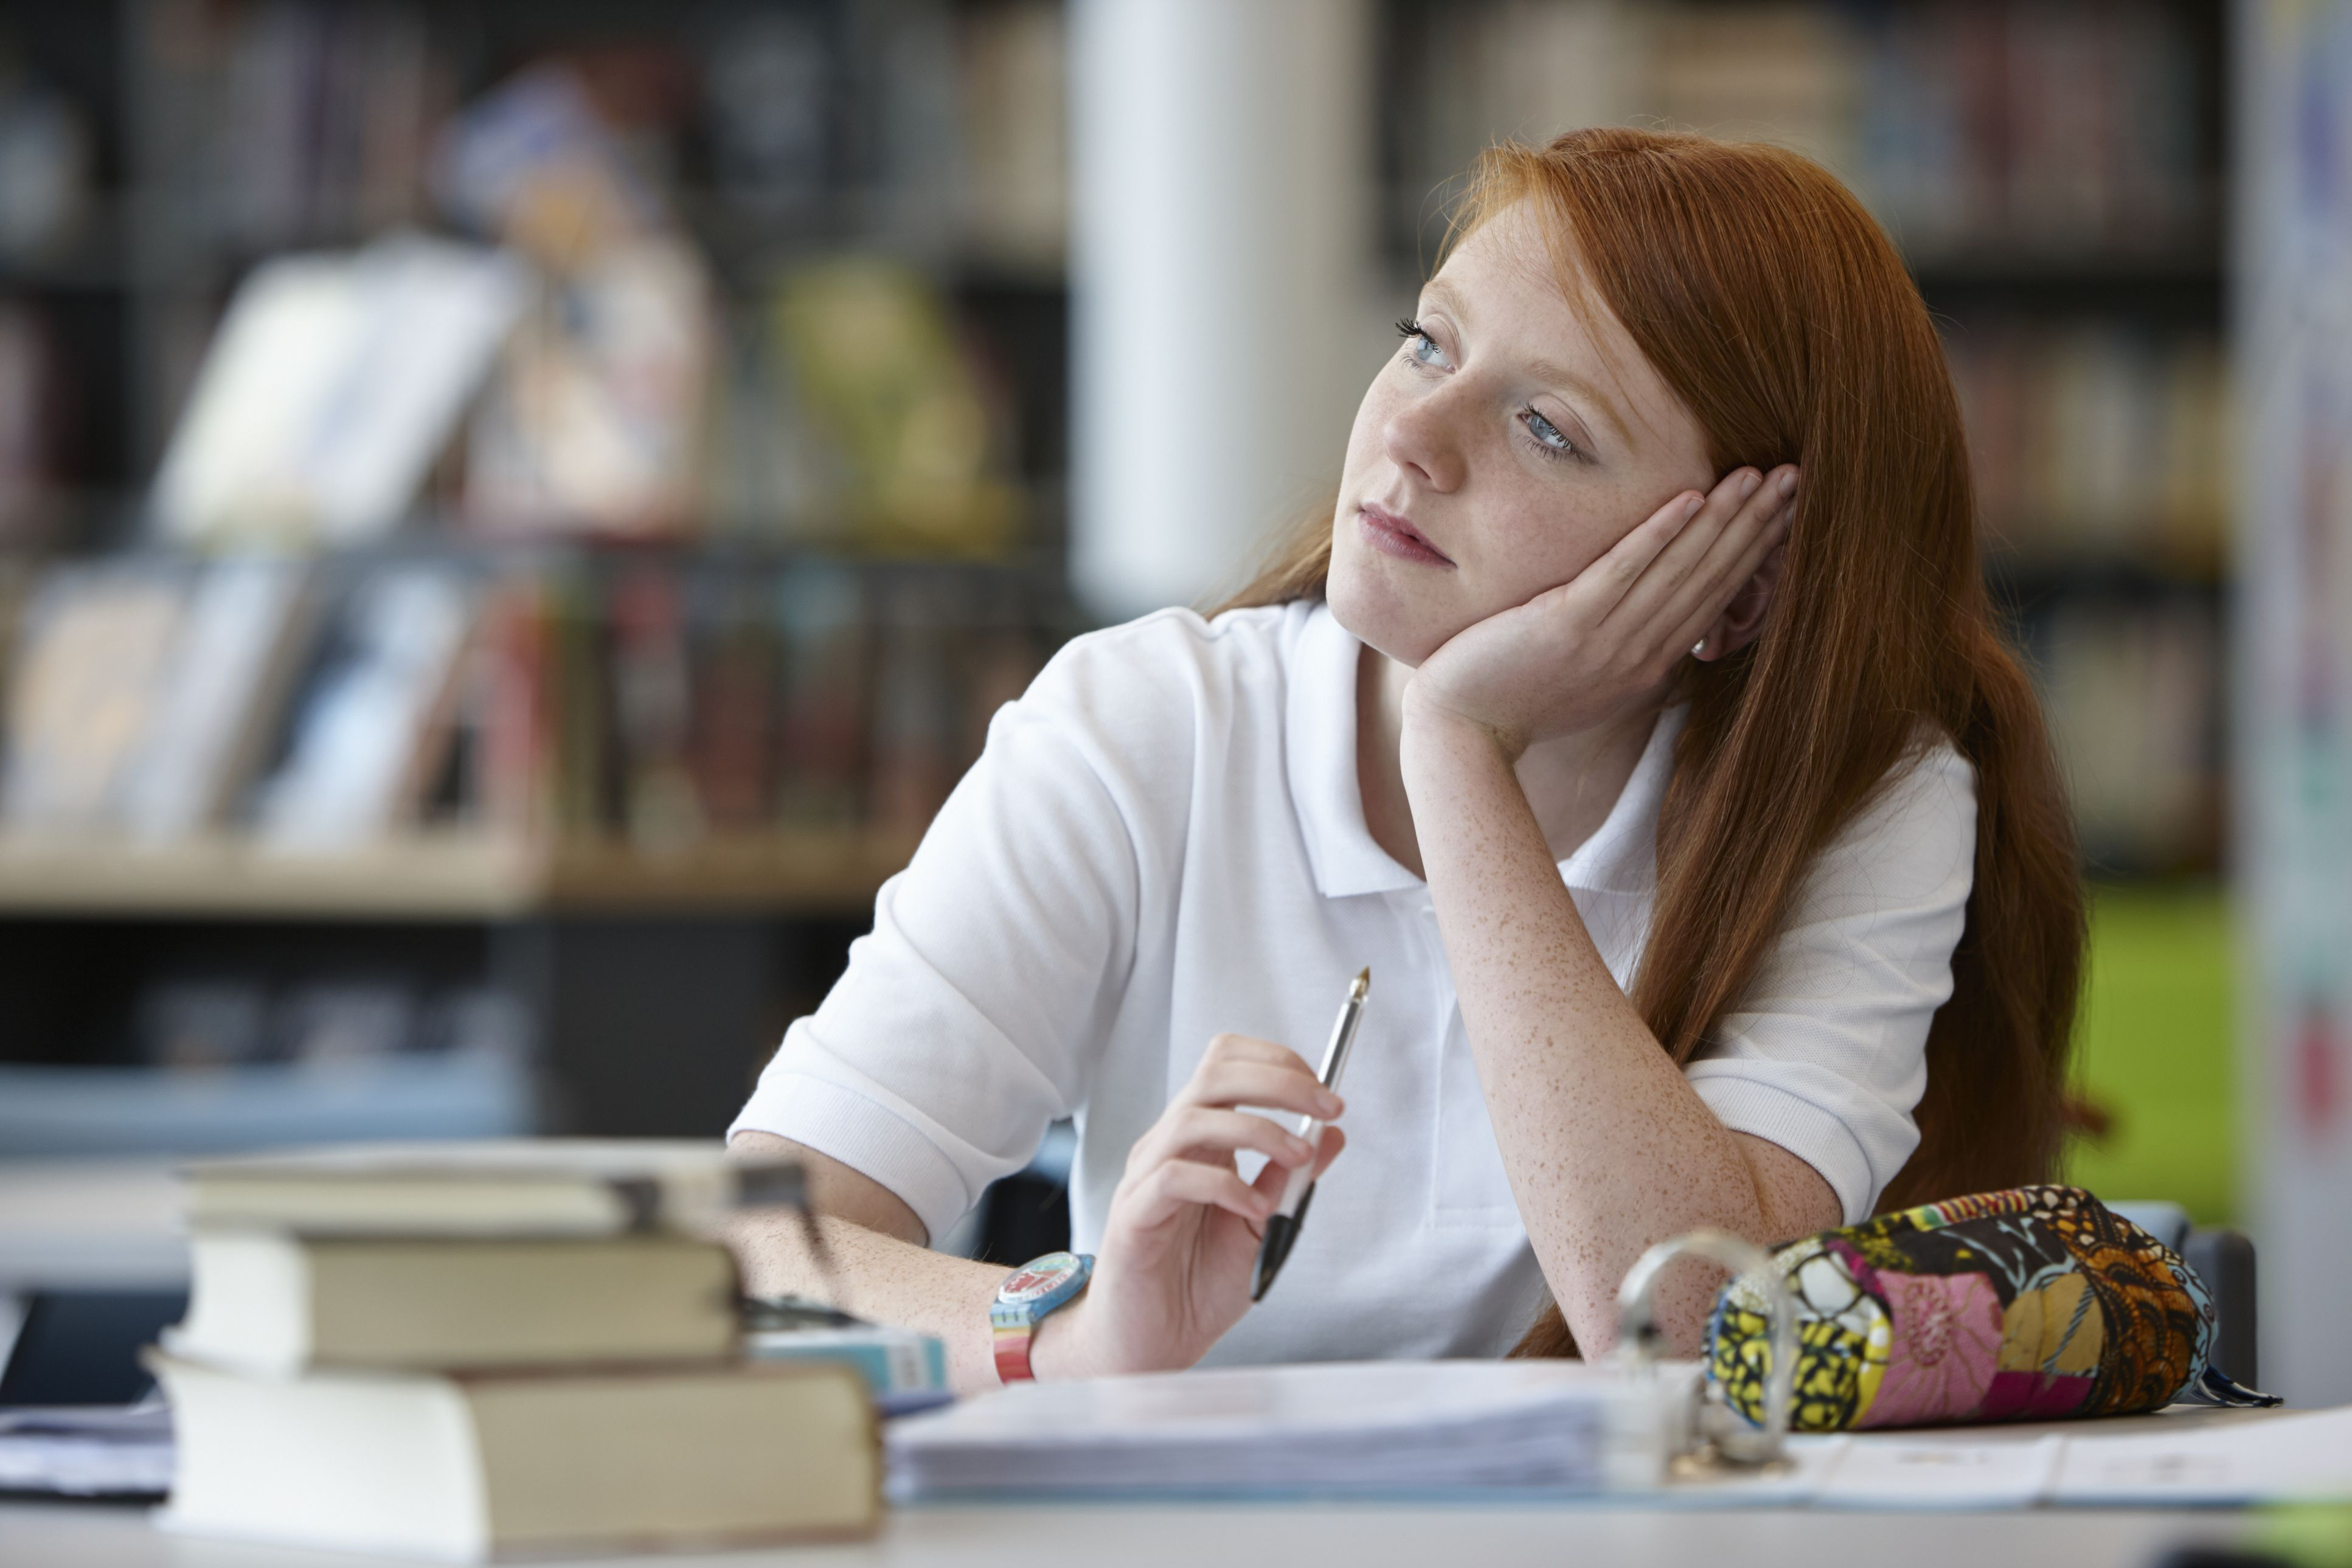 How Students With ADHD Can Be Successful in College